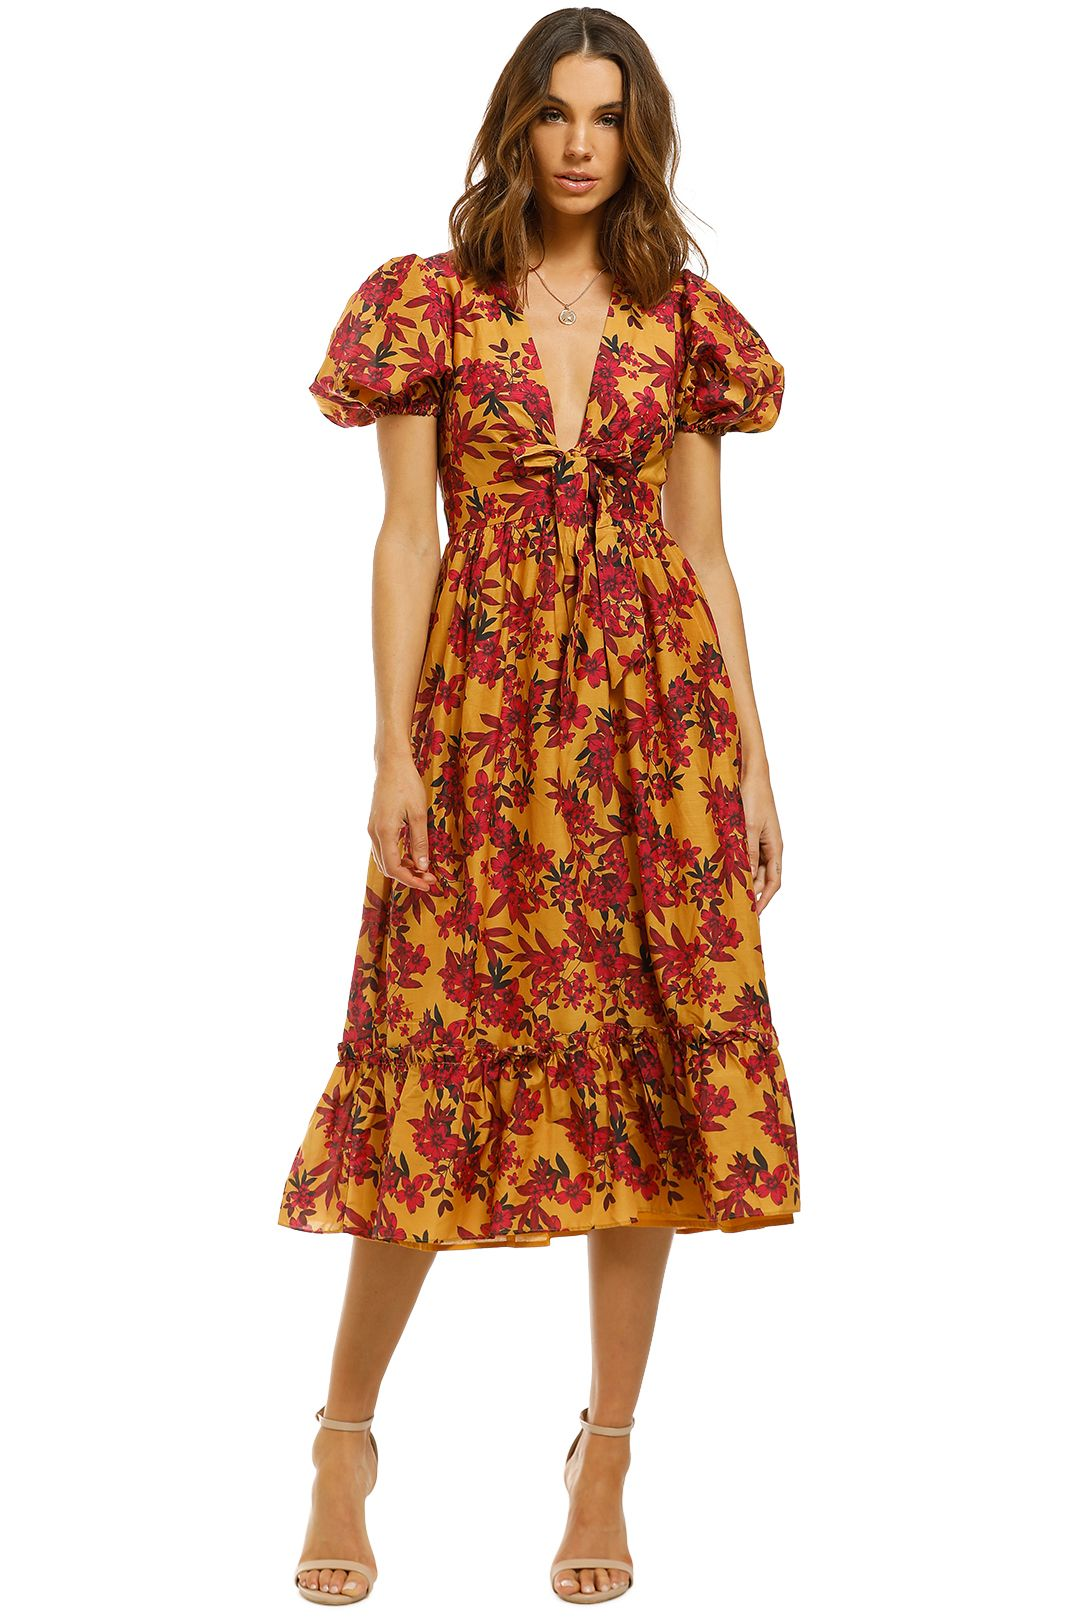 Talulah-Red-Sea-Midi-Dress-Burgundy-Floral-Front